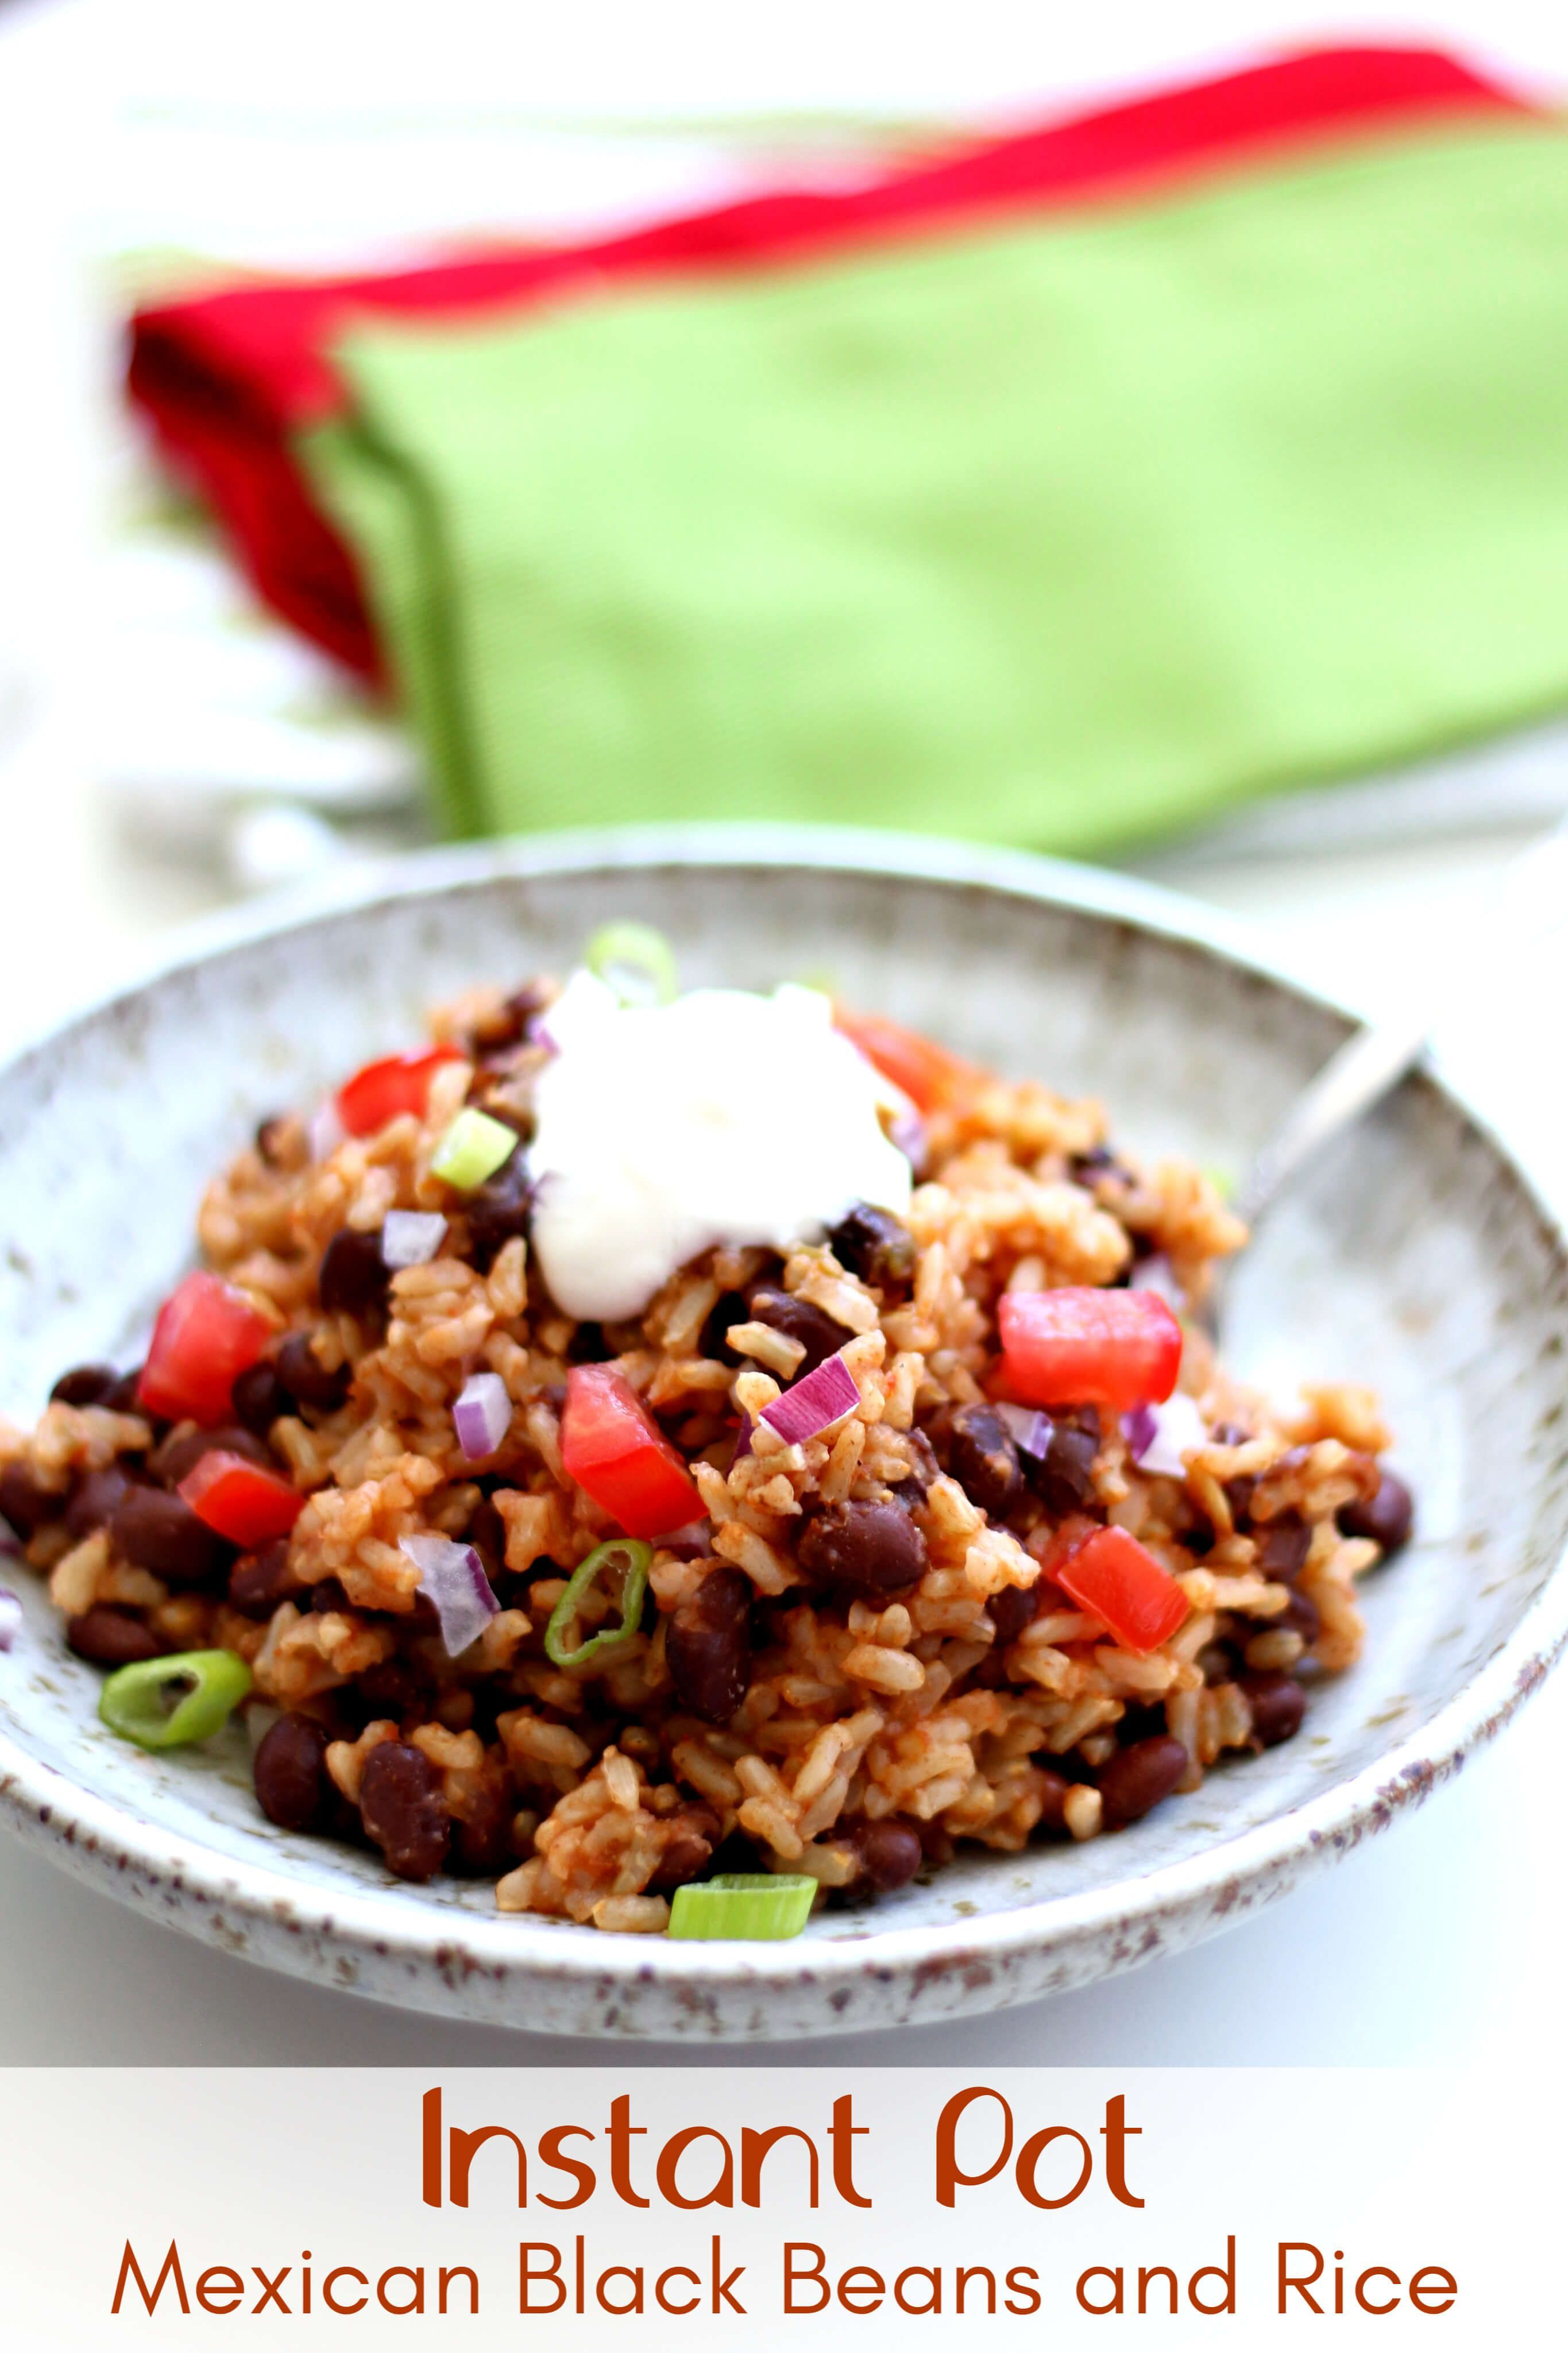 Instant Pot Mexican Black Beans and Rice–the easiest and tastiest rice ever! Brown rice is cooked in flavorful salsa with garlic salt, a bay leaf and cumin. Canned black beans make this recipe very convenient. And my favorite part is a squeeze of lime juice and a dollop of sour cream on top. Make this as a meal or as a side dish. 153896512255247767